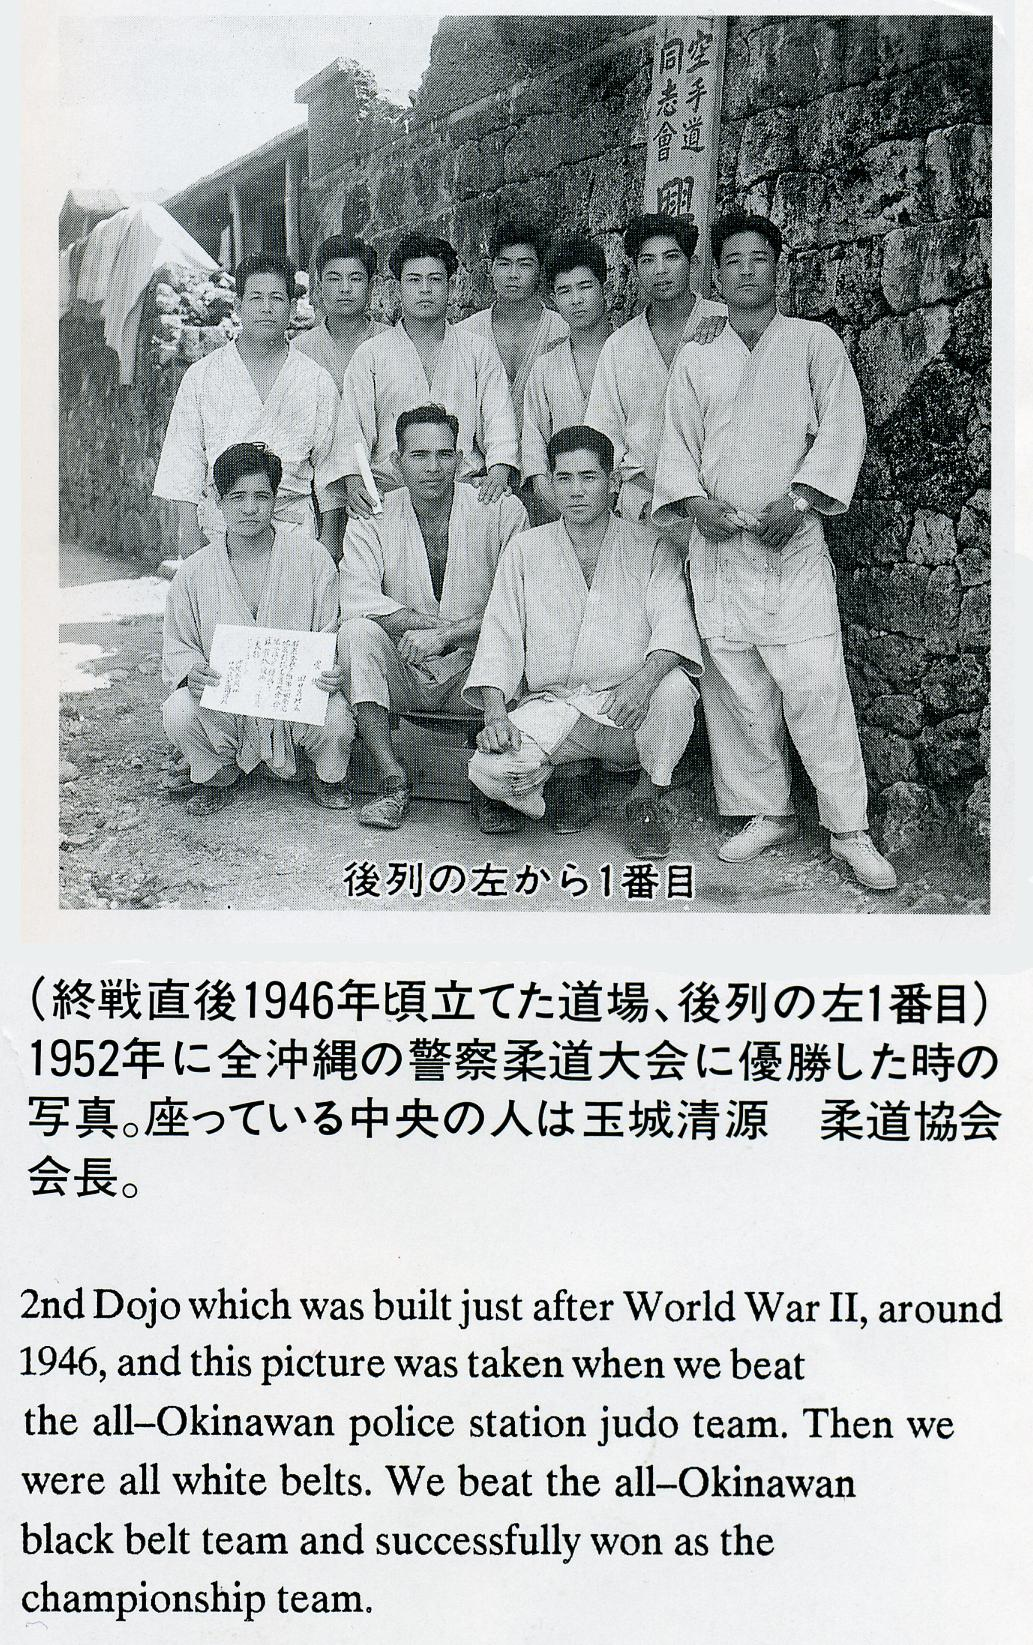 early (1946) after beating Japanese Judo team